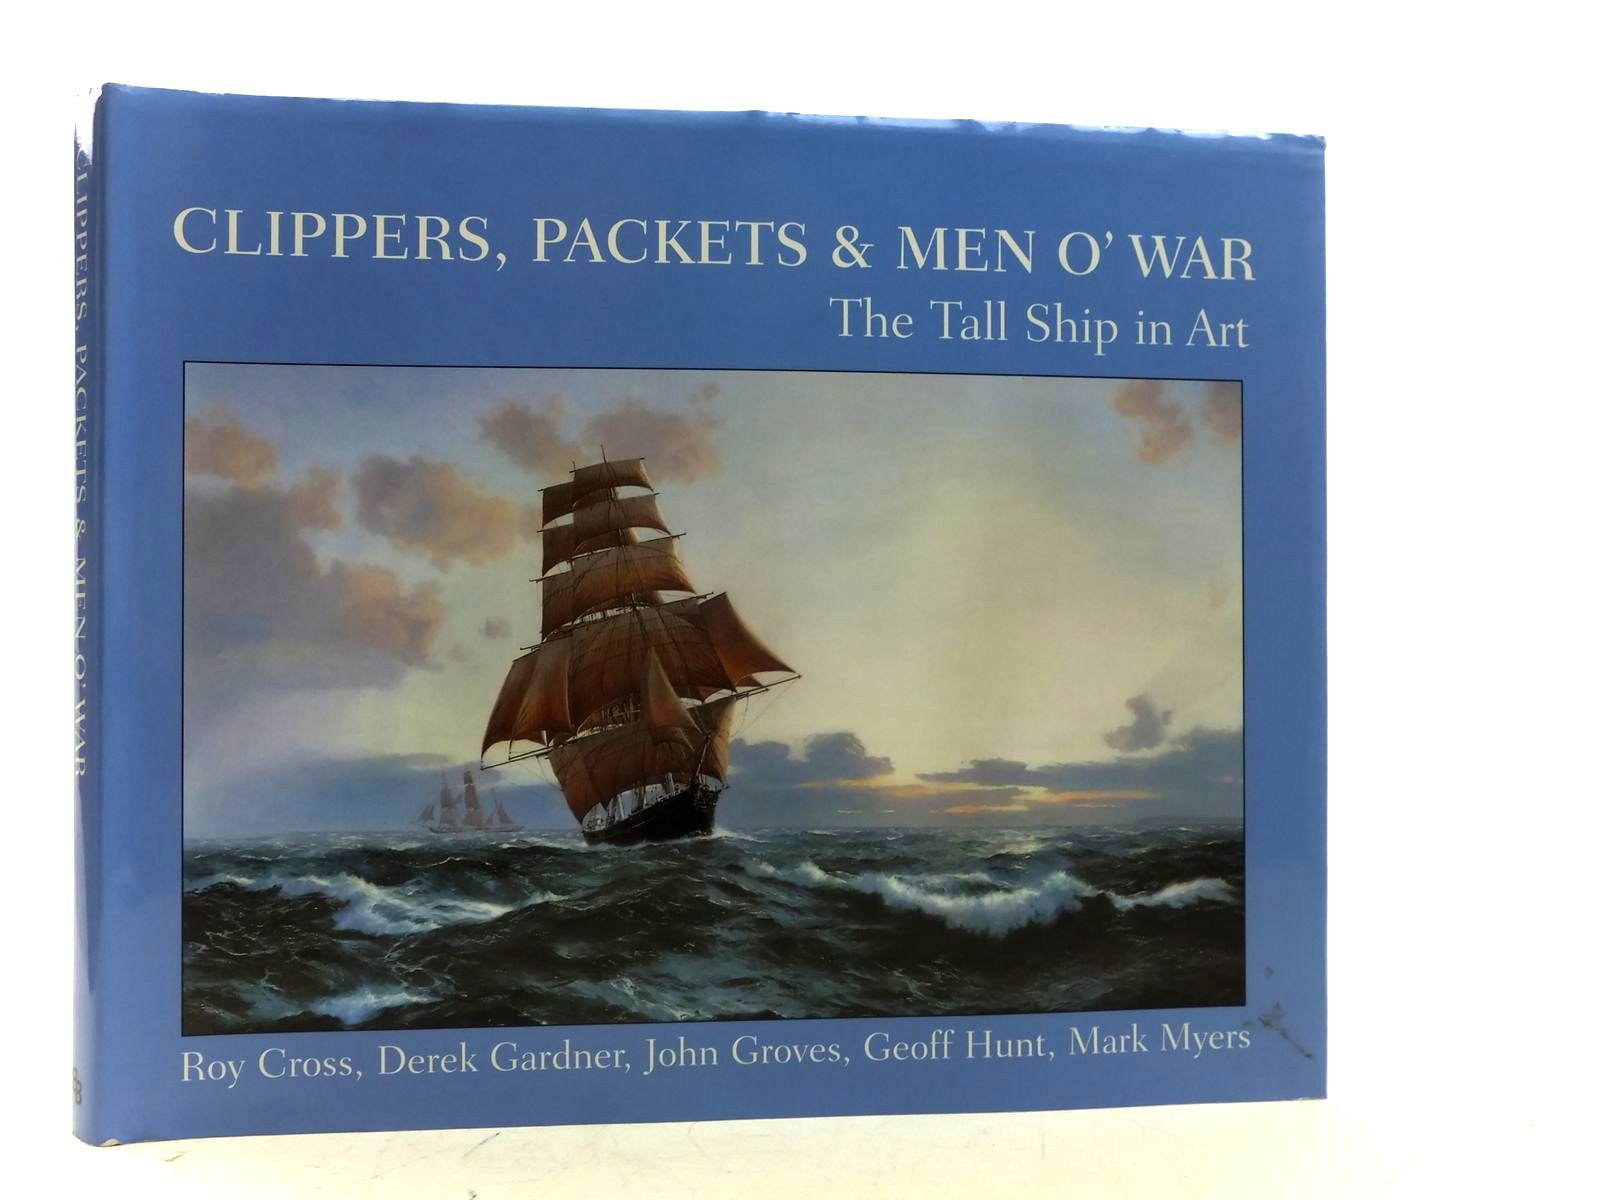 Photo of CLIPPERS, PACKETS & MEN O' WAR written by Hurst, Alex A.<br />Cross, Roy<br />Gardner, Derek<br />Groves, John<br />Hunt, Geoff<br />Myers, Matt illustrated by Cross, Roy<br />et al., published by Bounty Books (STOCK CODE: 2113088)  for sale by Stella & Rose's Books